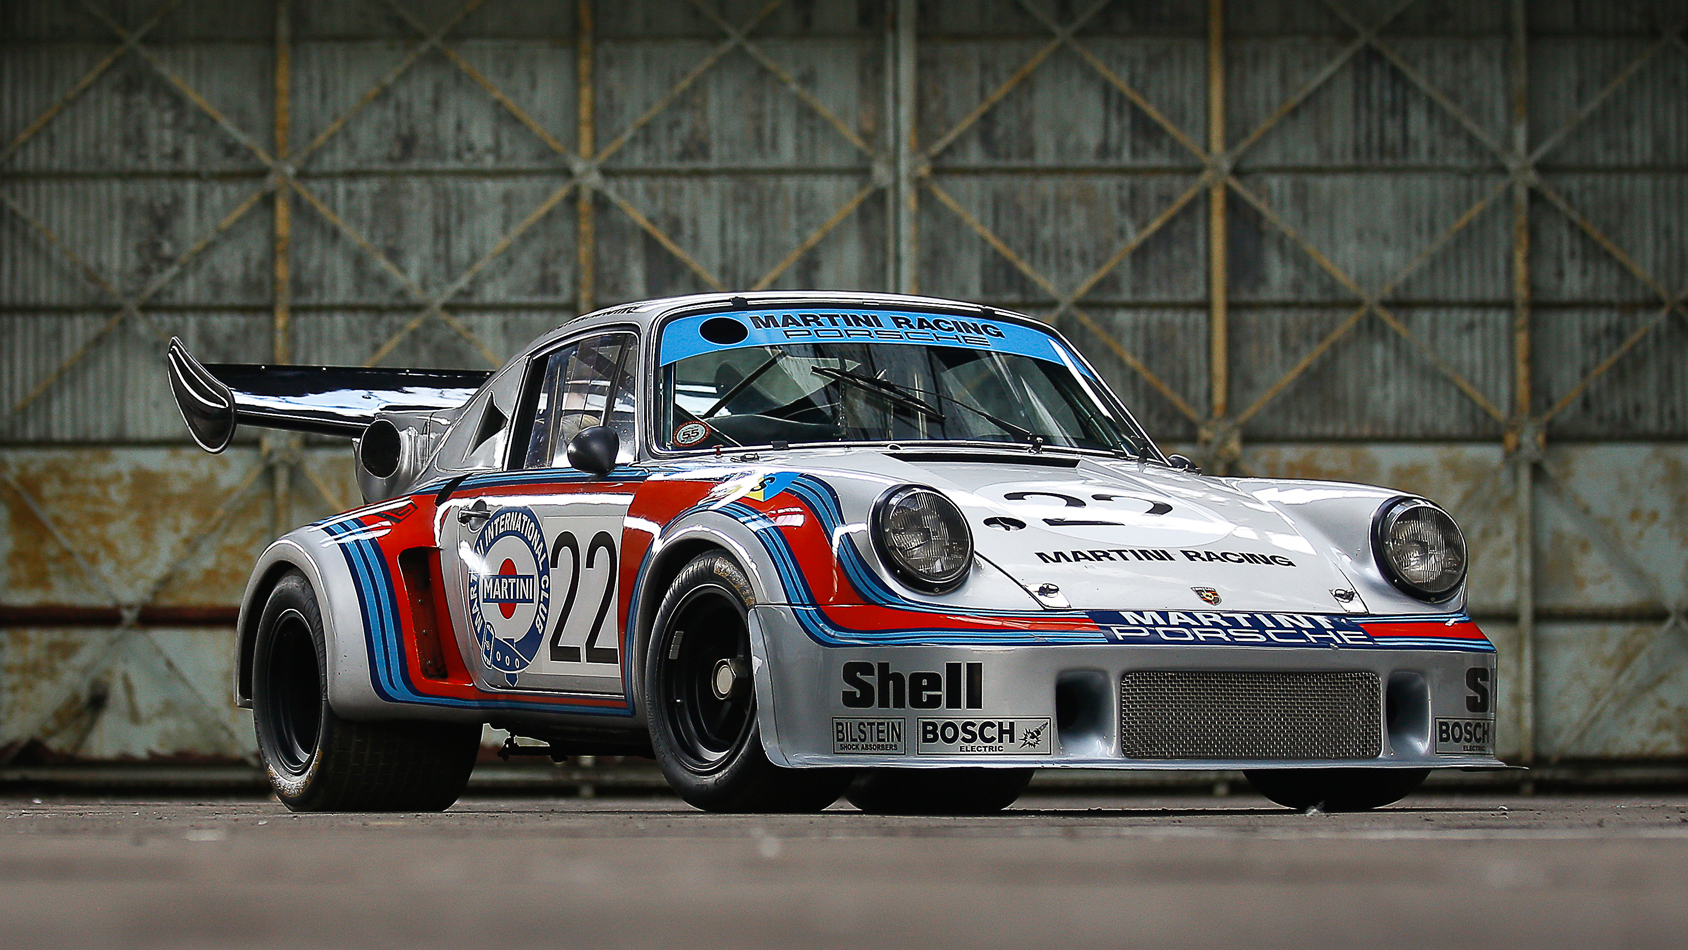 This legendary Porsche race car is up for sale | Top Gear